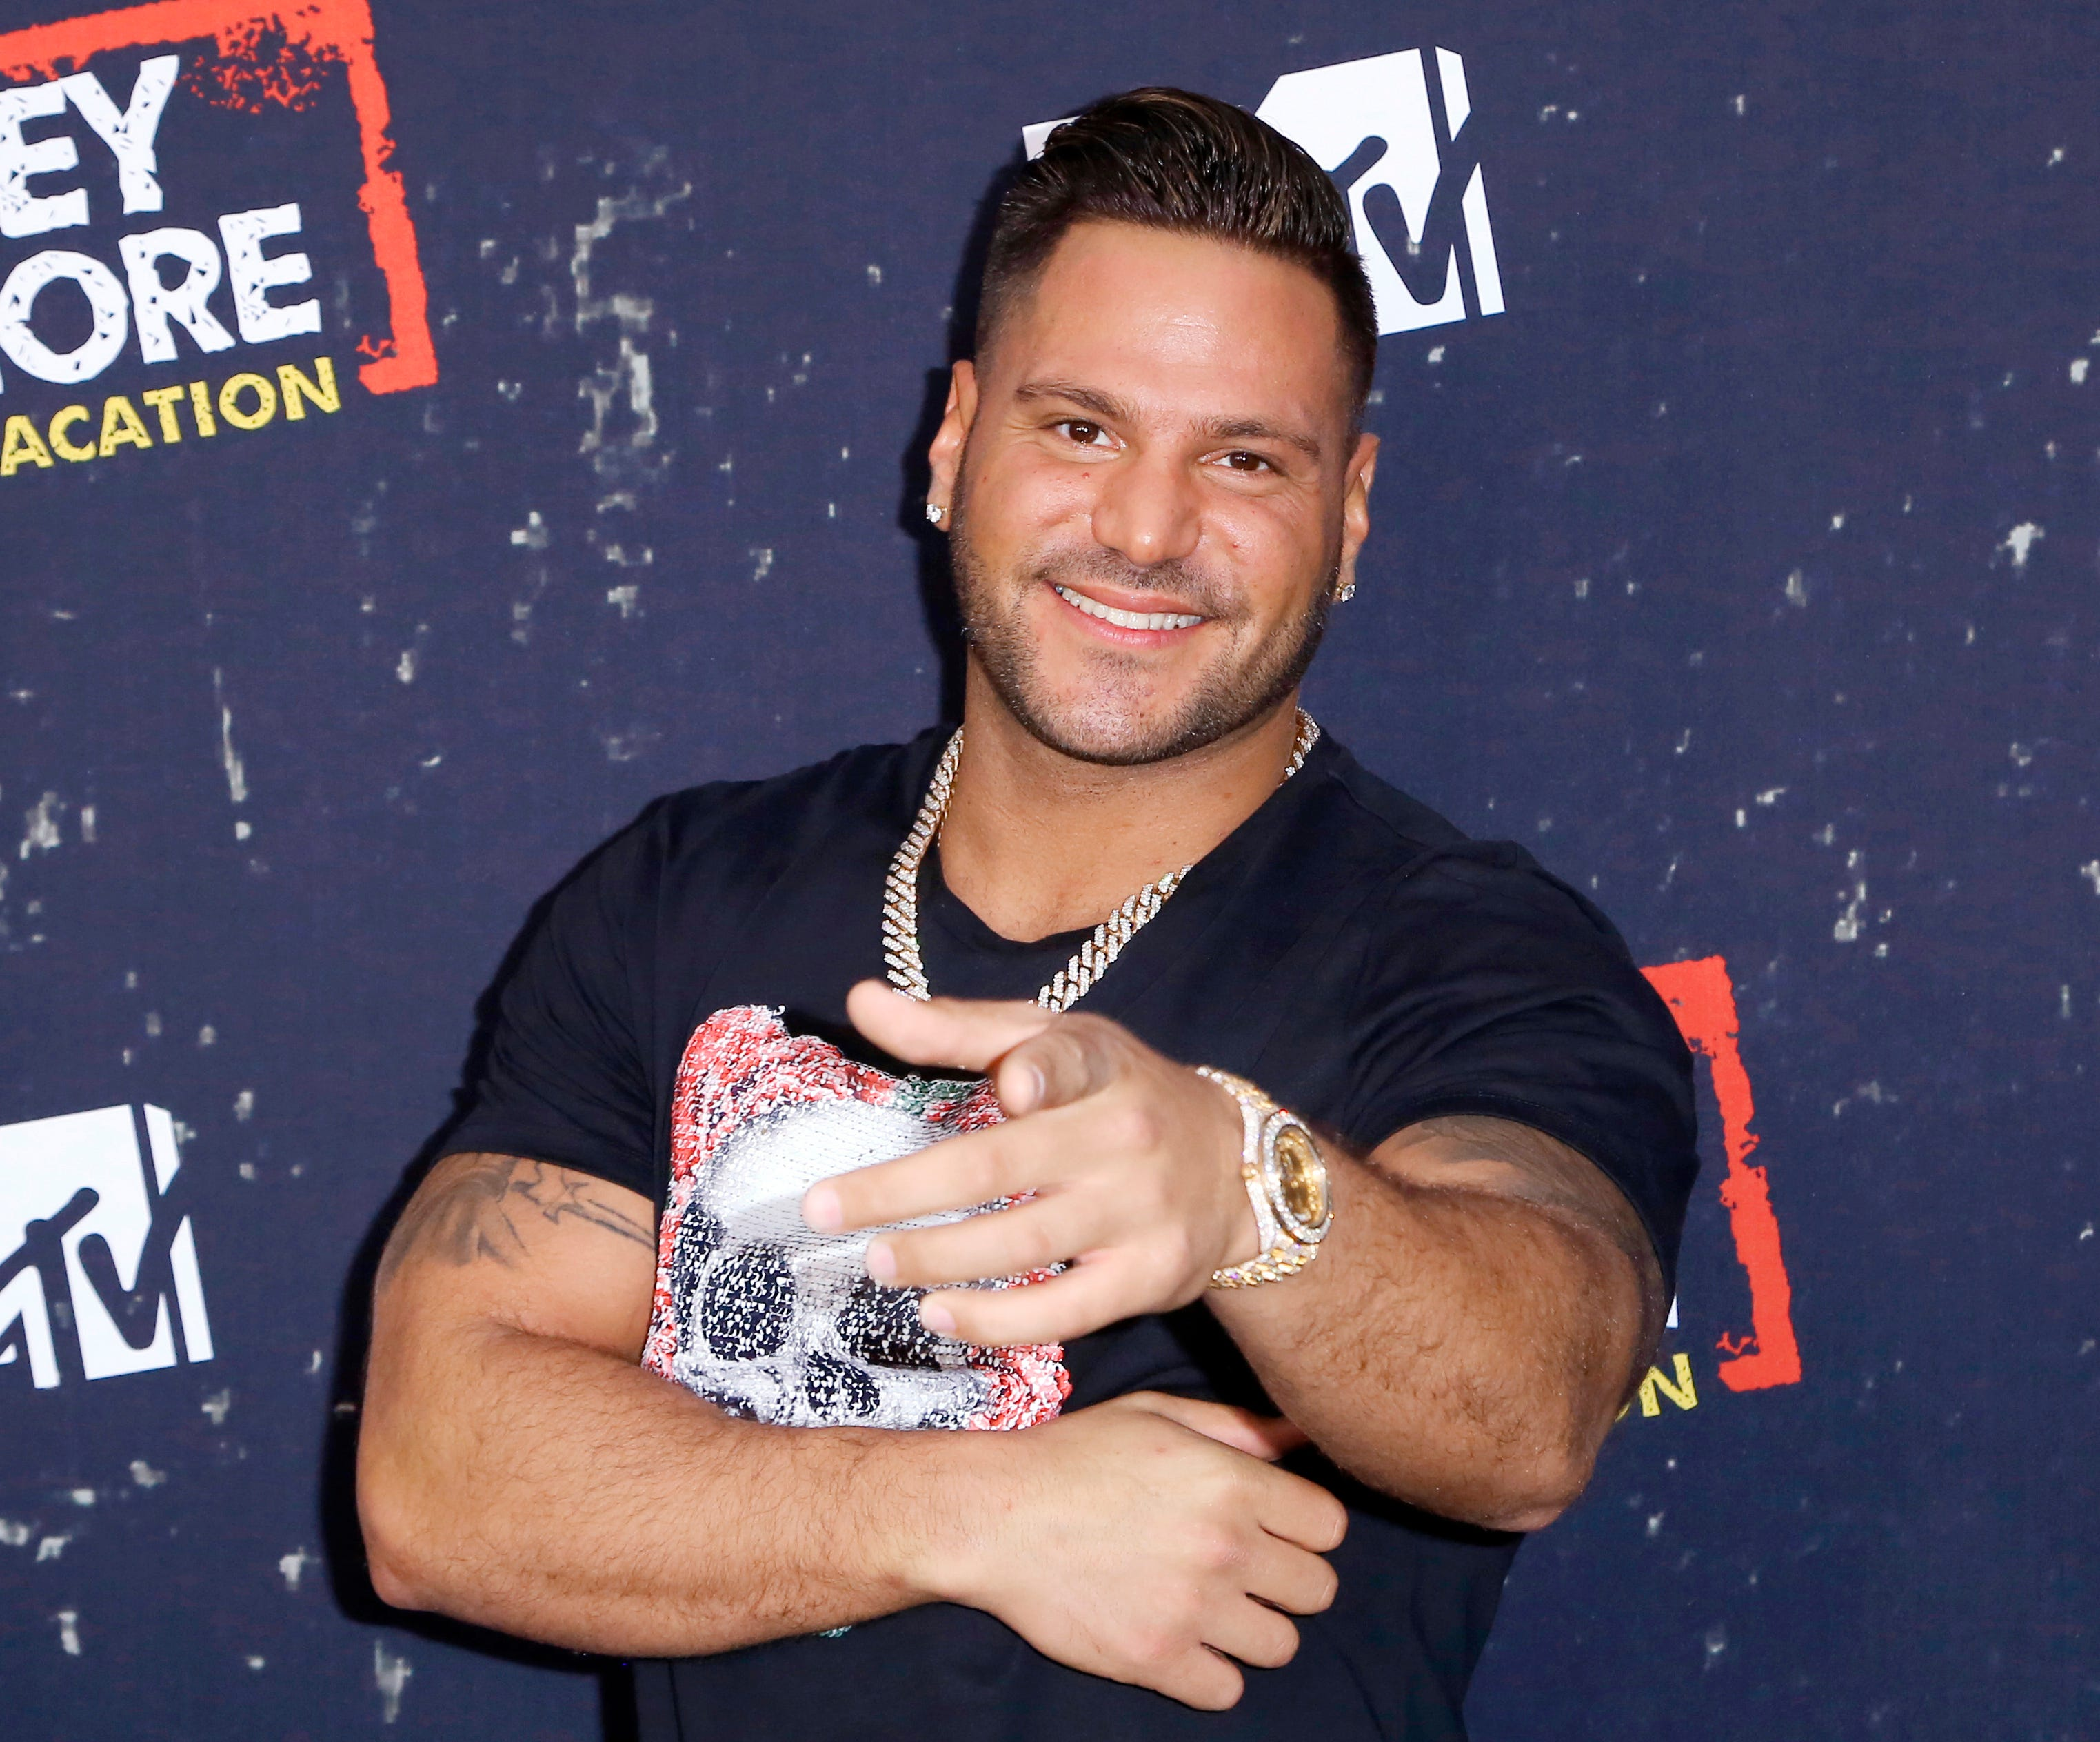 Jersey Shore: Ronnie Ortiz-Magro engaged, cast silent